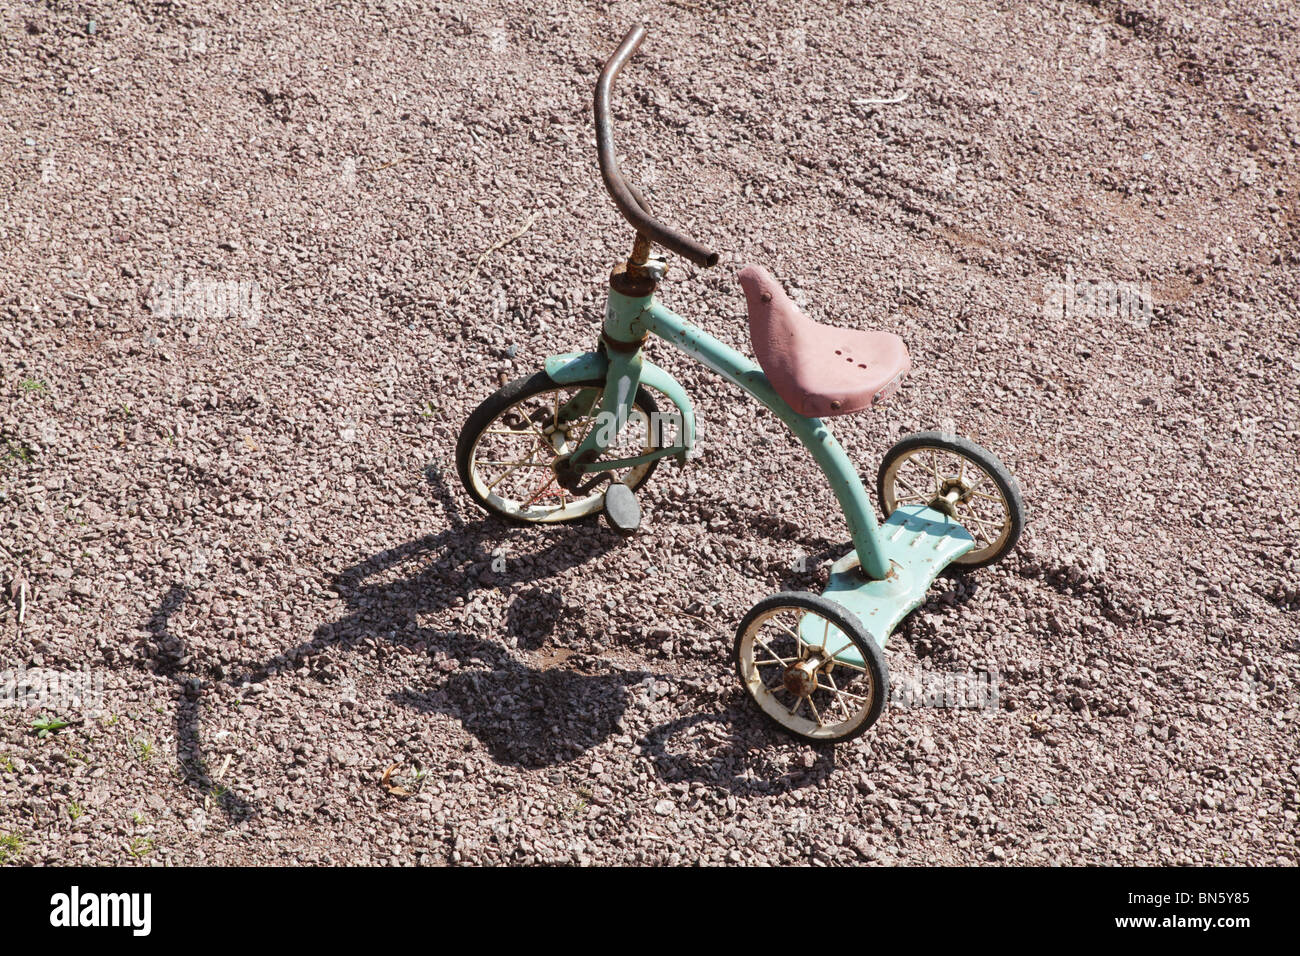 Antique Classic Child Children S Tricycle On A Gravel Path Stock Photo Alamy